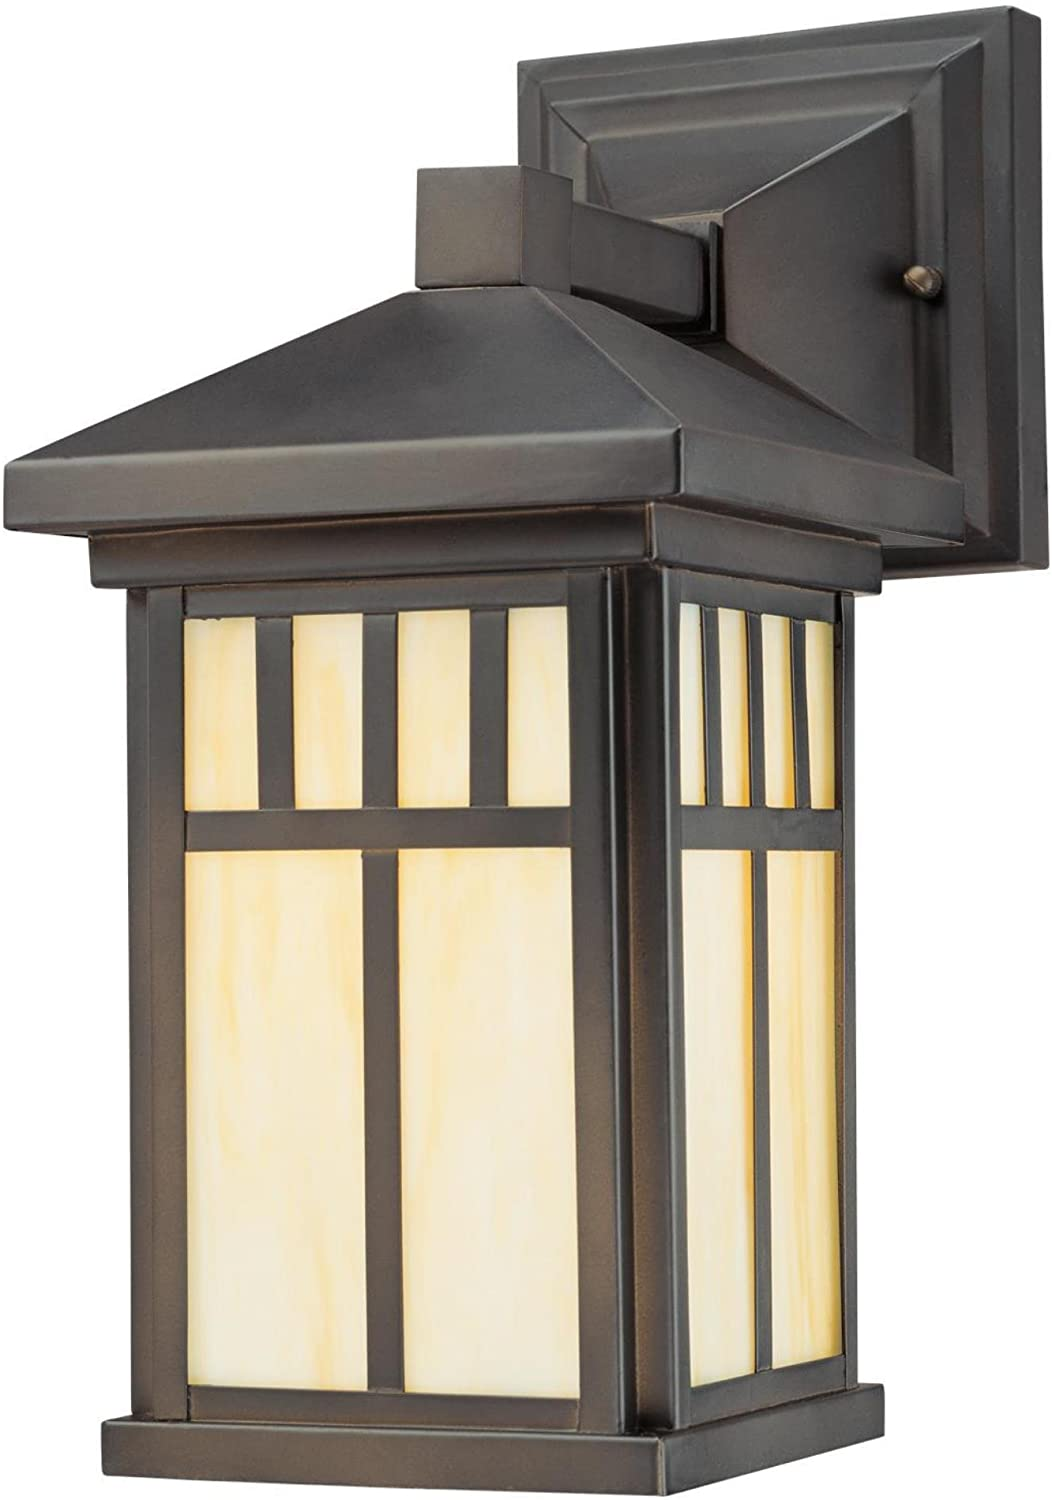 Westinghouse 6732800 Burnham One Light Exterior Wall Lantern On Steel With Honey Art Glass Oil Rubbed Bronze Finish Tools Home Improvement Amazon Canada